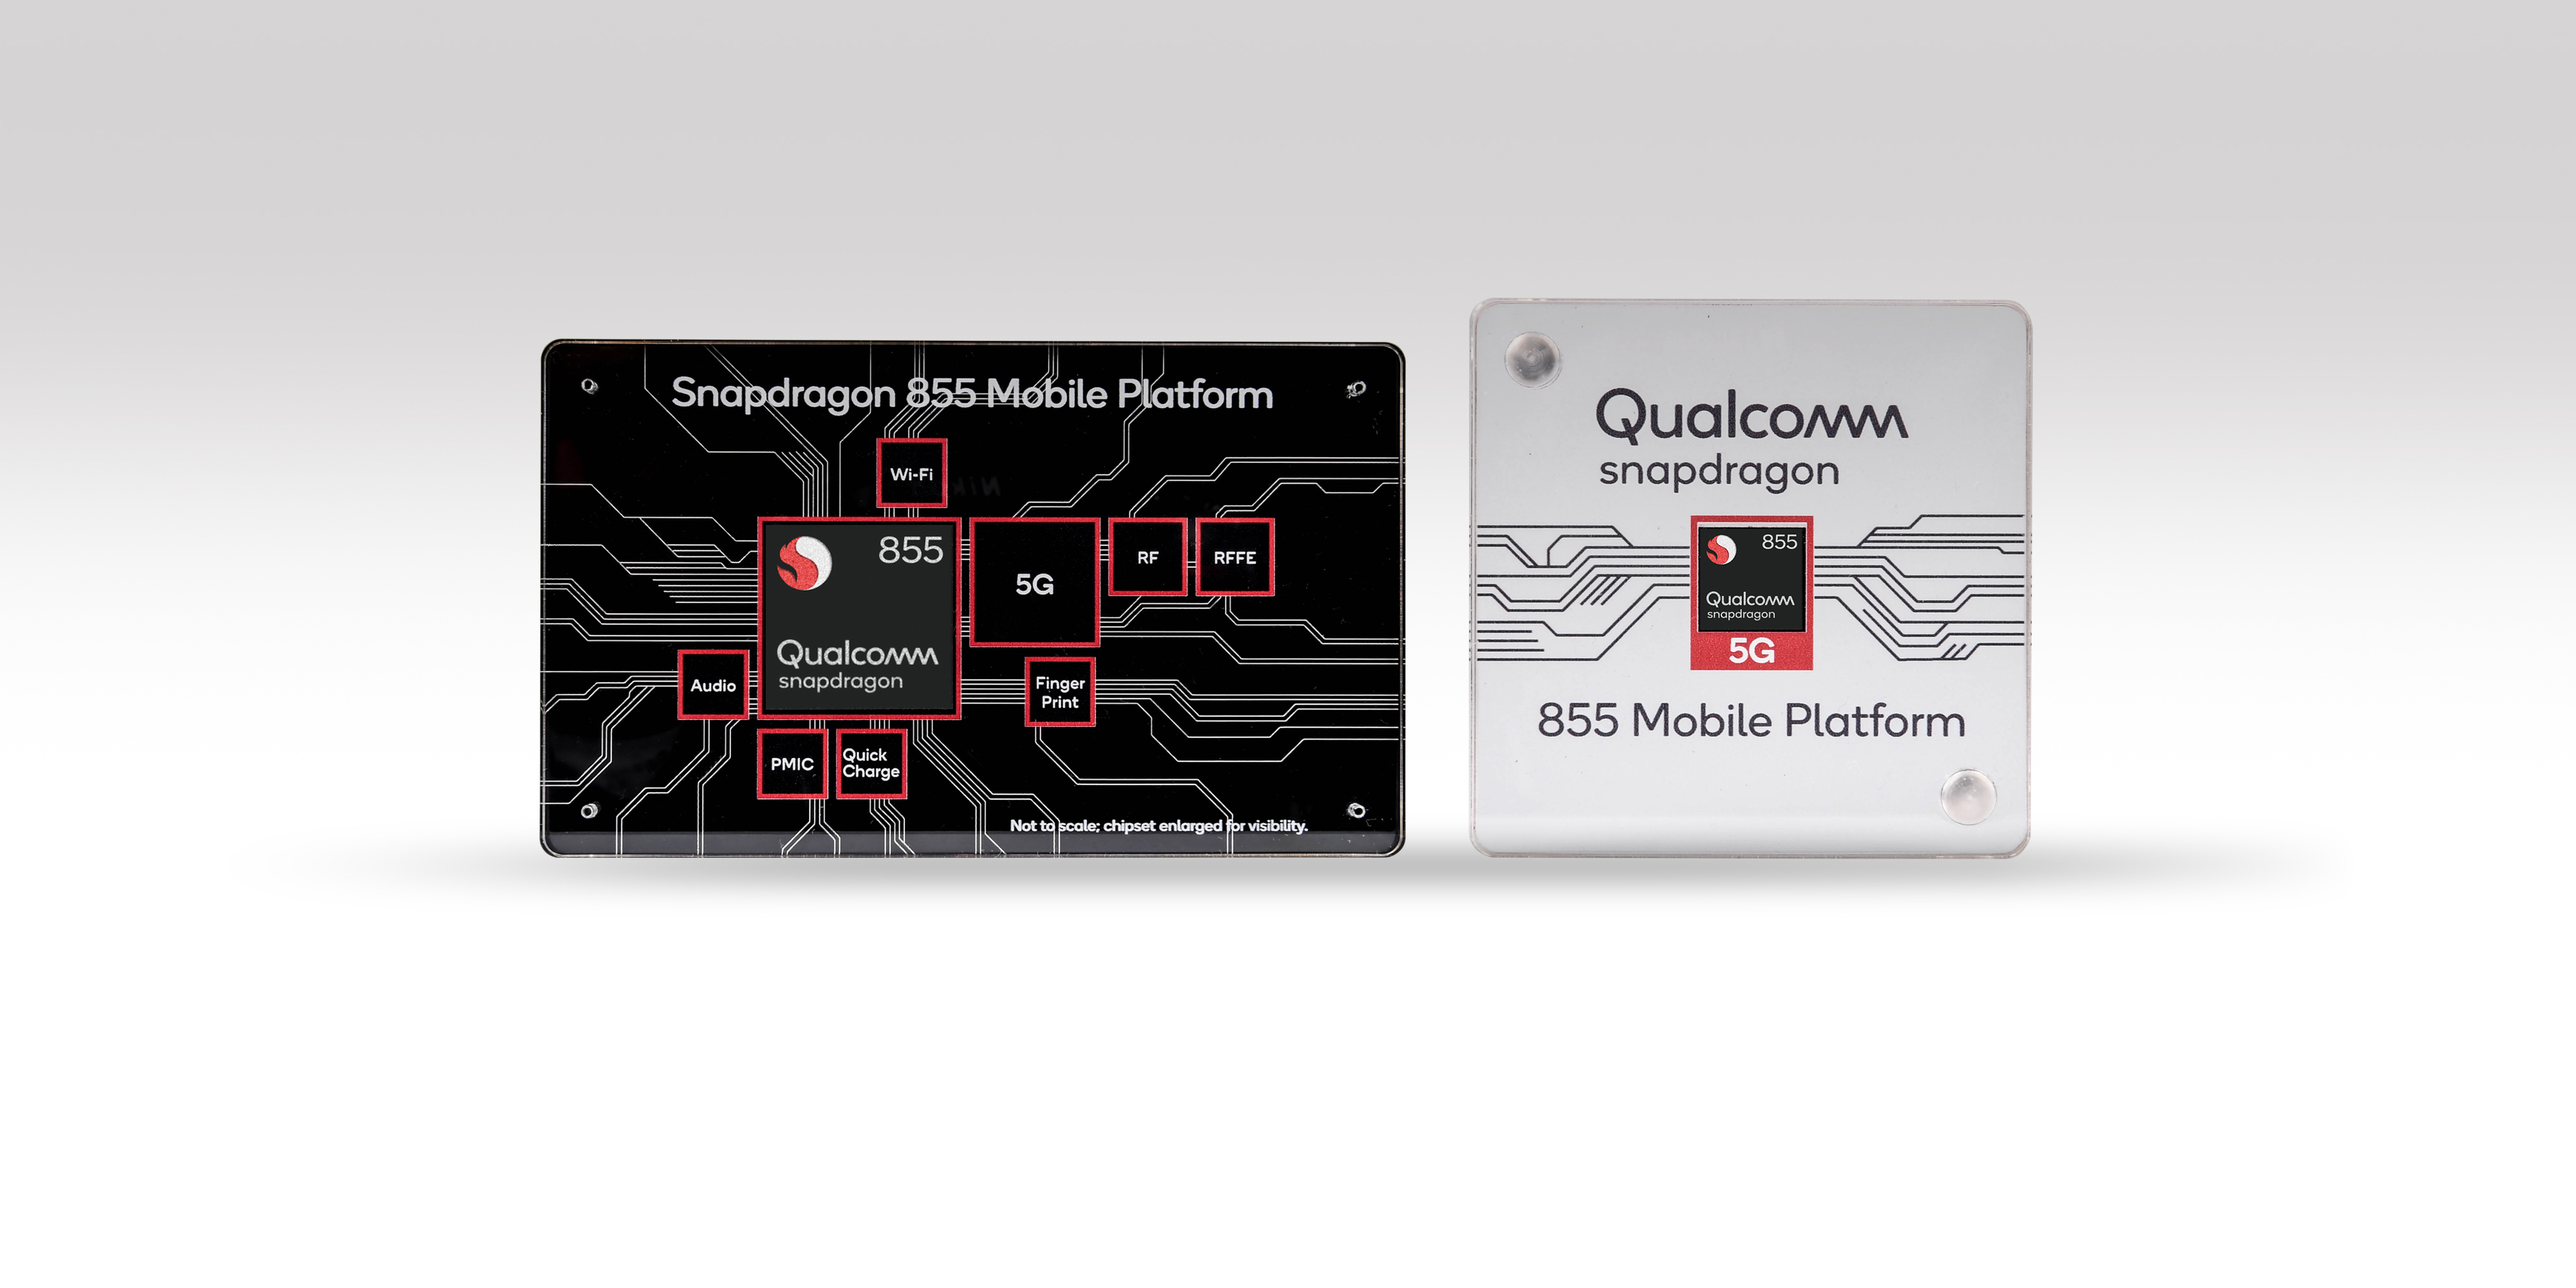 Qualcomm Snapdragon 855 specs